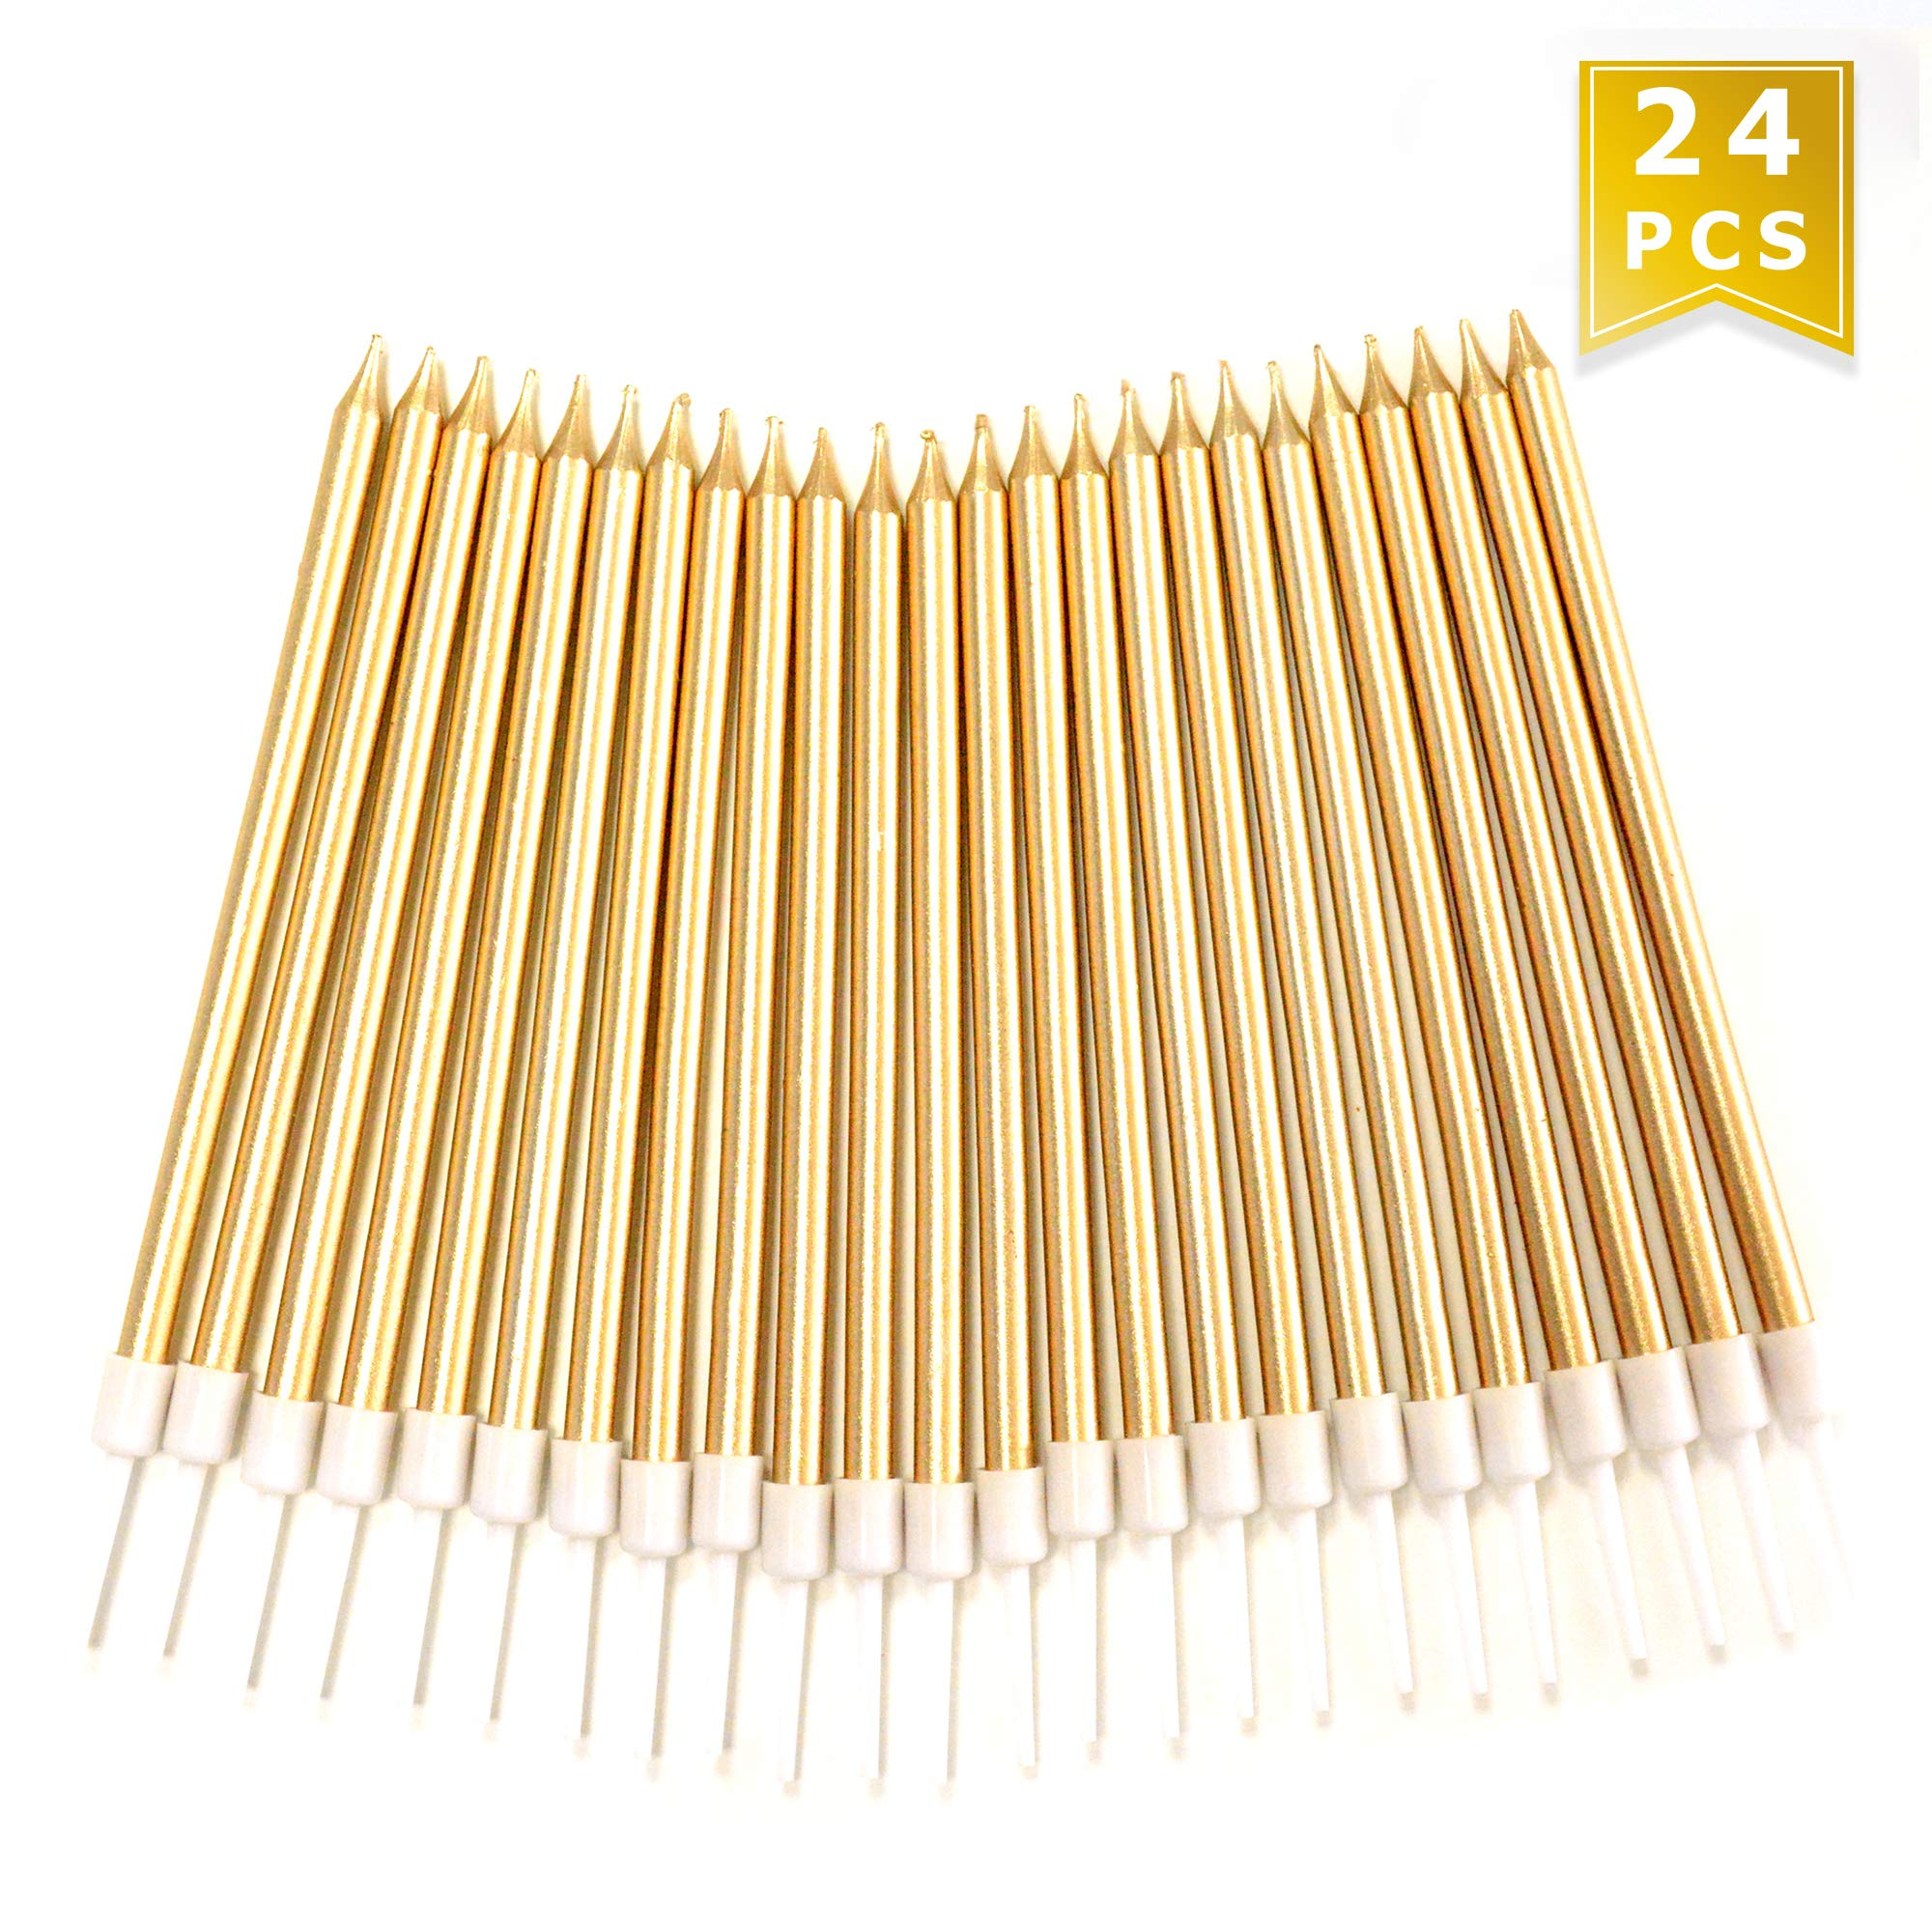 24 Count Birthday Party Long Thin Cake Candles Metallic Birthday Candles in Holders for Birthday Cakes Decorations, Champagne Gold by Lucky Party